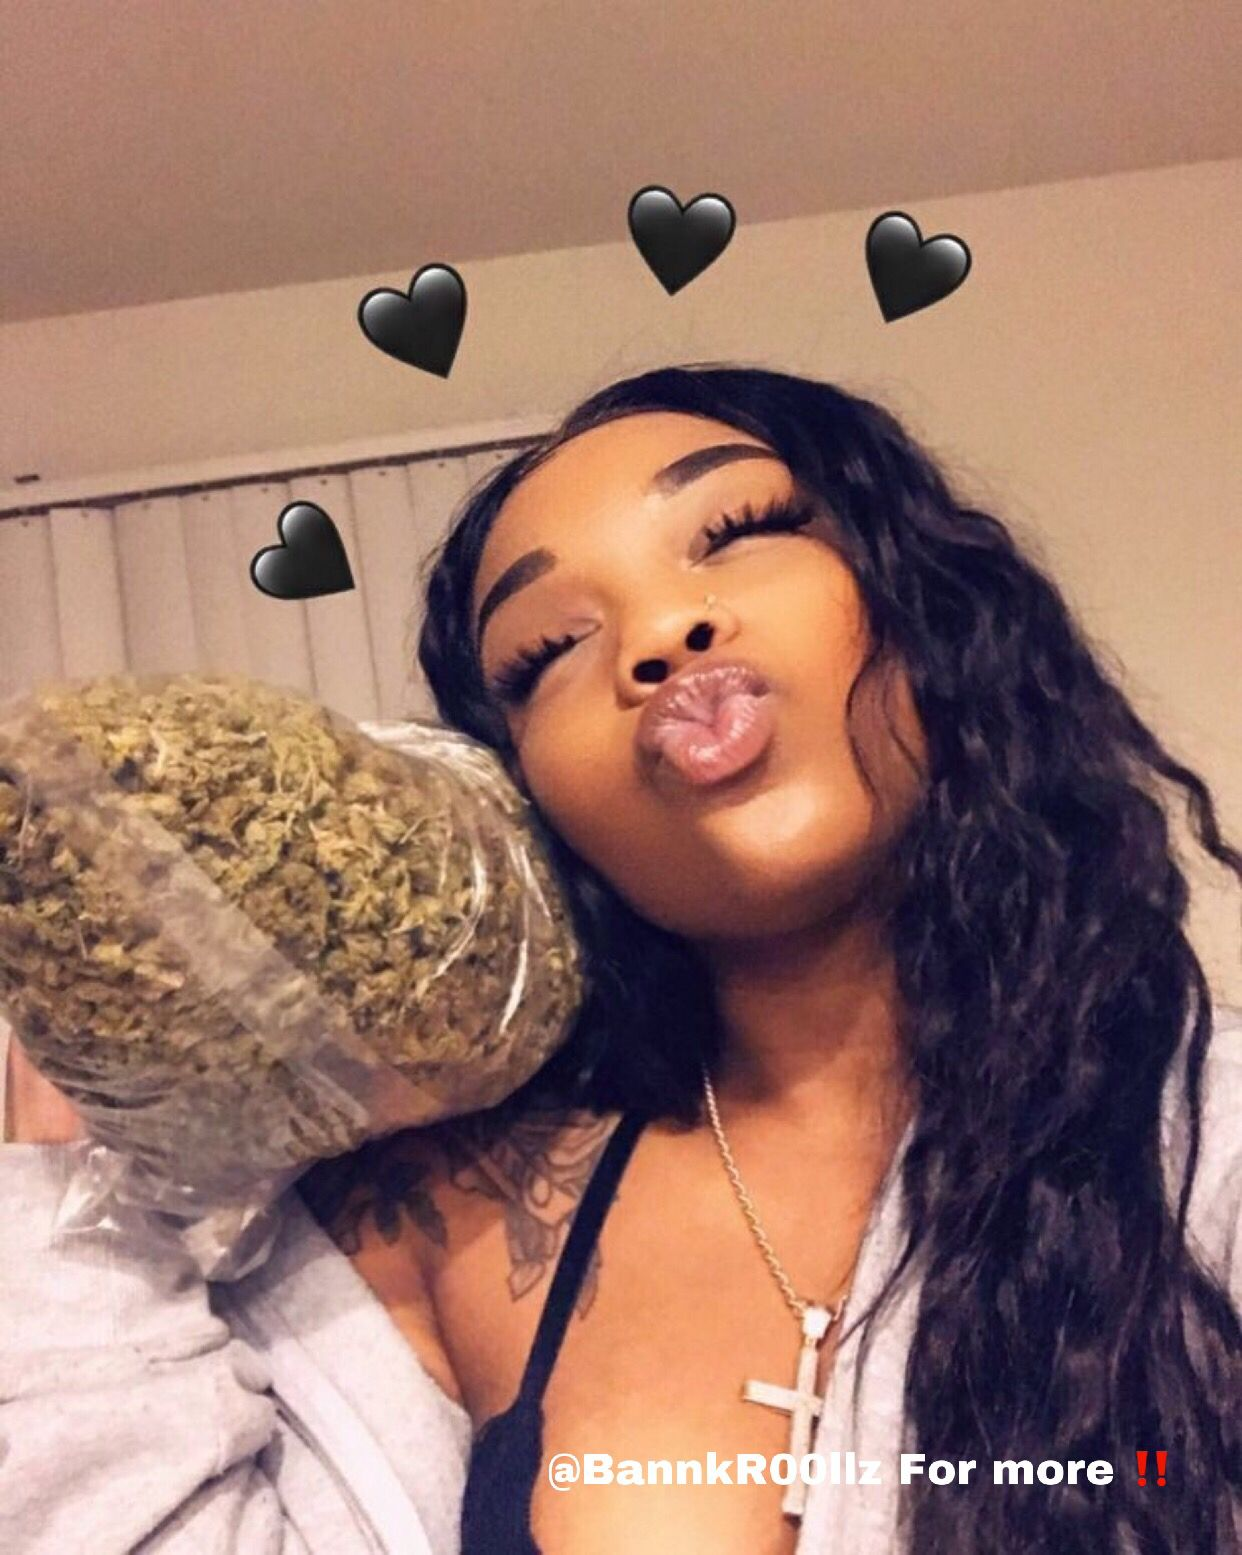 Pin by XOXO_GOODVIBES  on BAD GIRLS PERIOD | Weed, Thug girl